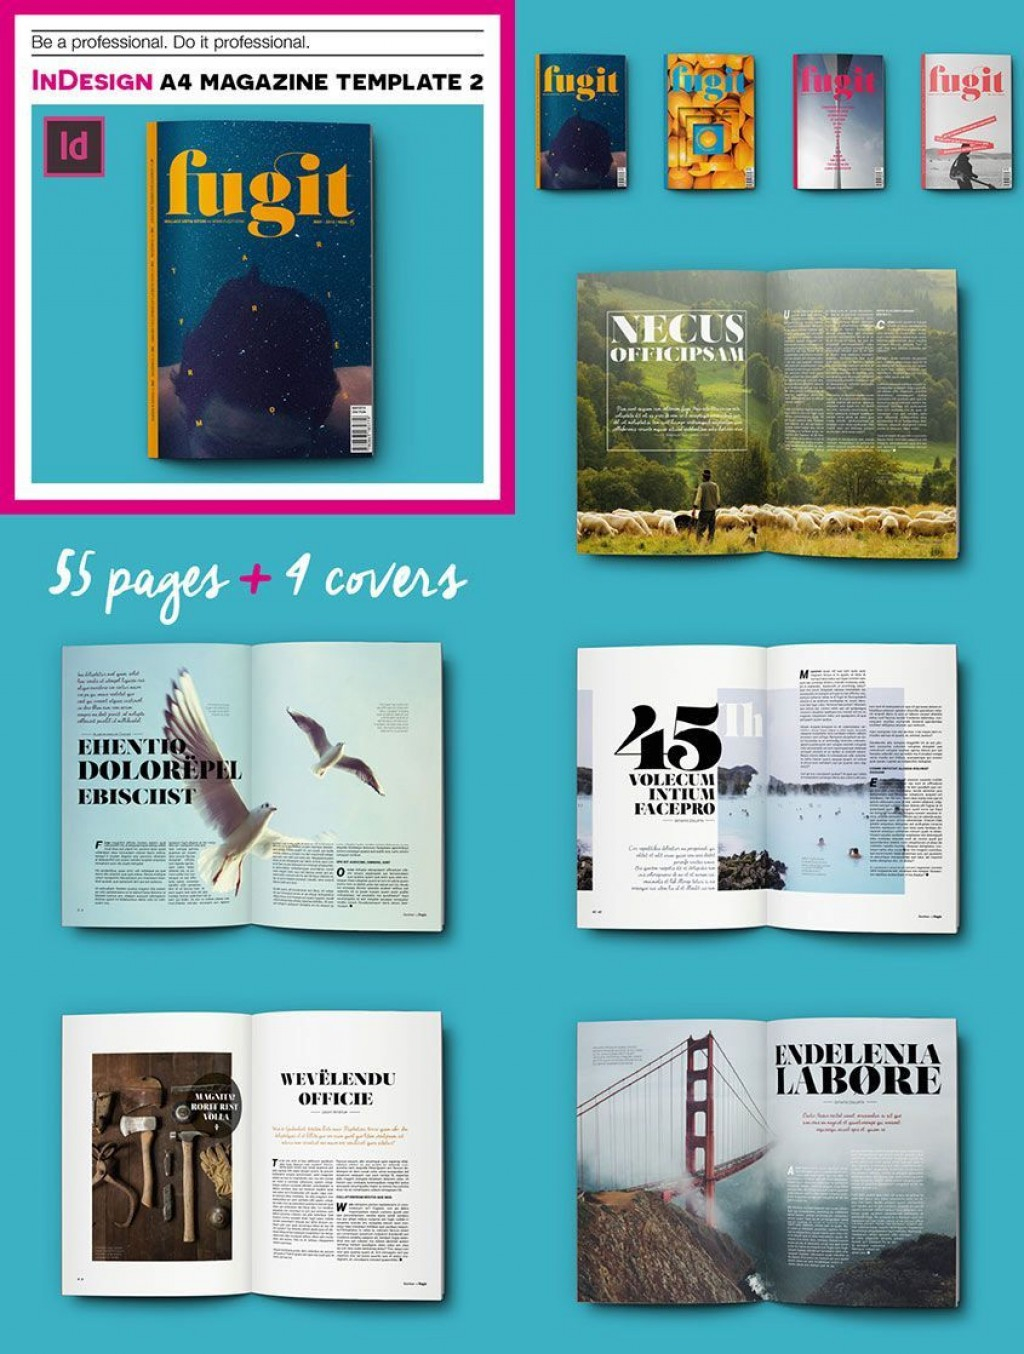 002 Simple Magazine Template Free Word Idea  For Microsoft Download ArticleLarge